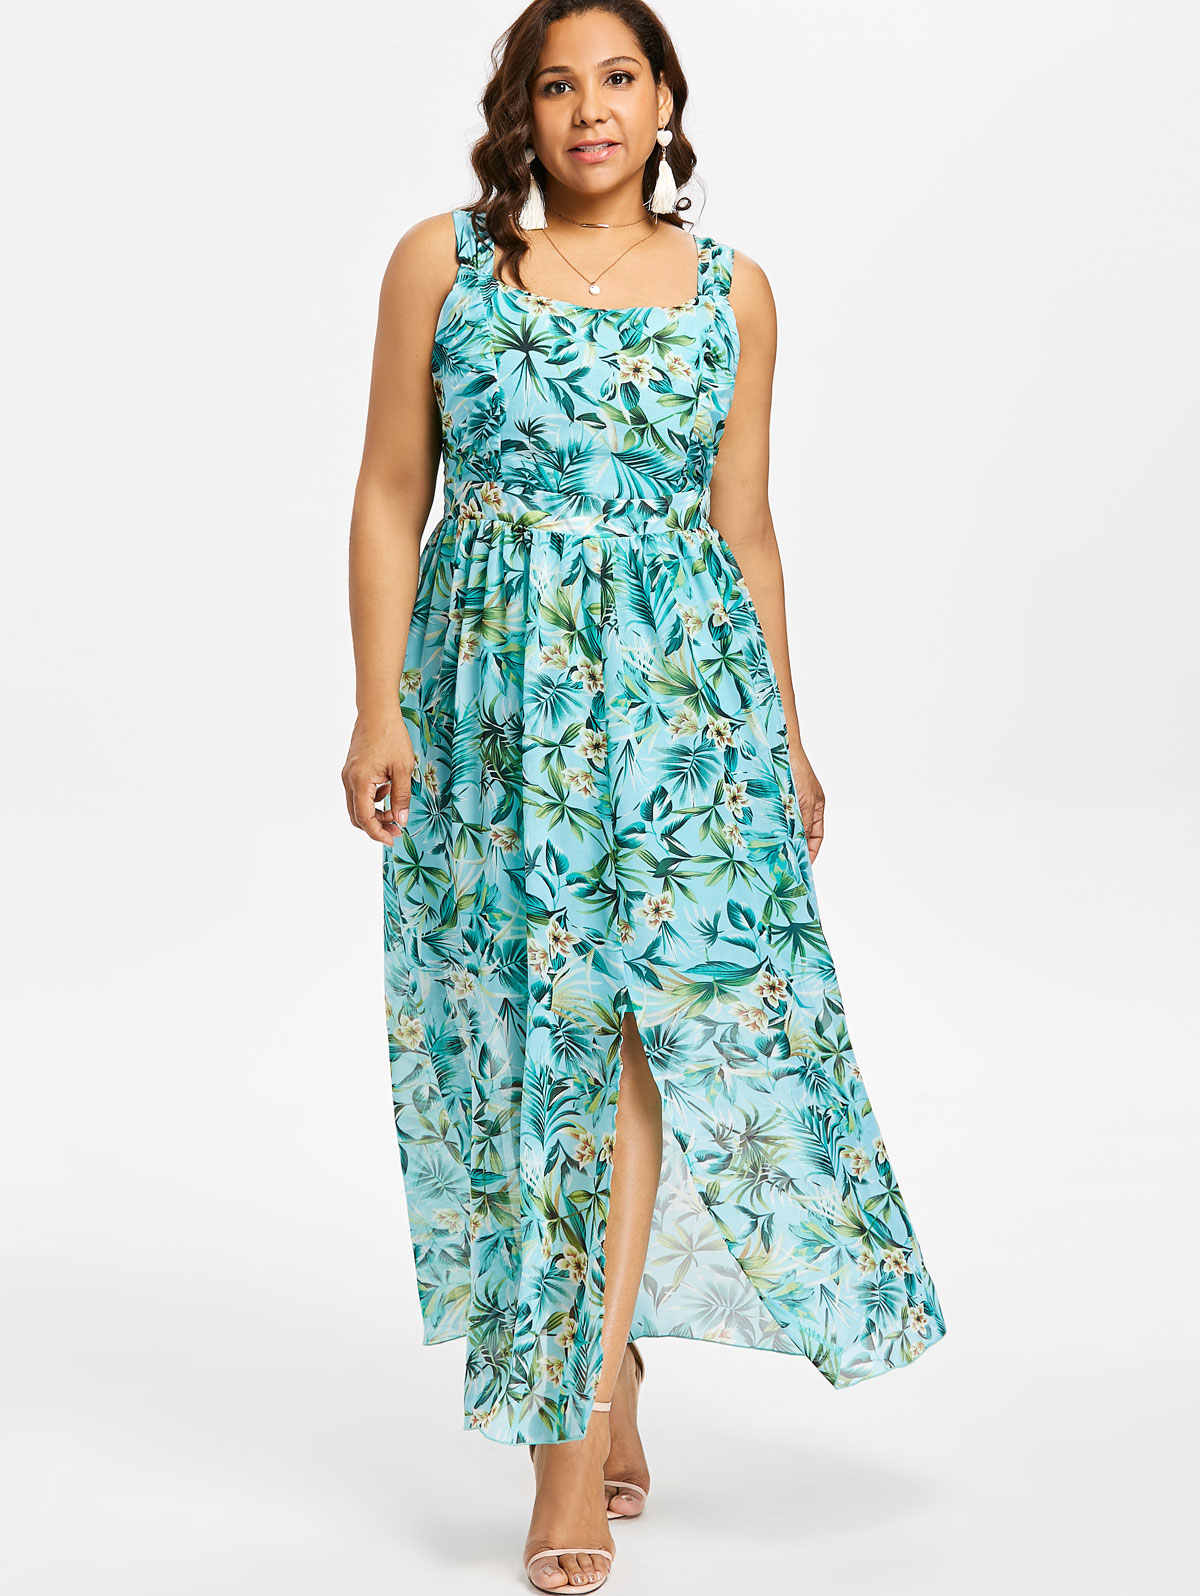 Wipalo Plus Size 5XL Sleeveless Maxi Hawaiian Dress Front Split Floral  Print Dress High Waist Flowing Holiday Dress Vestidos